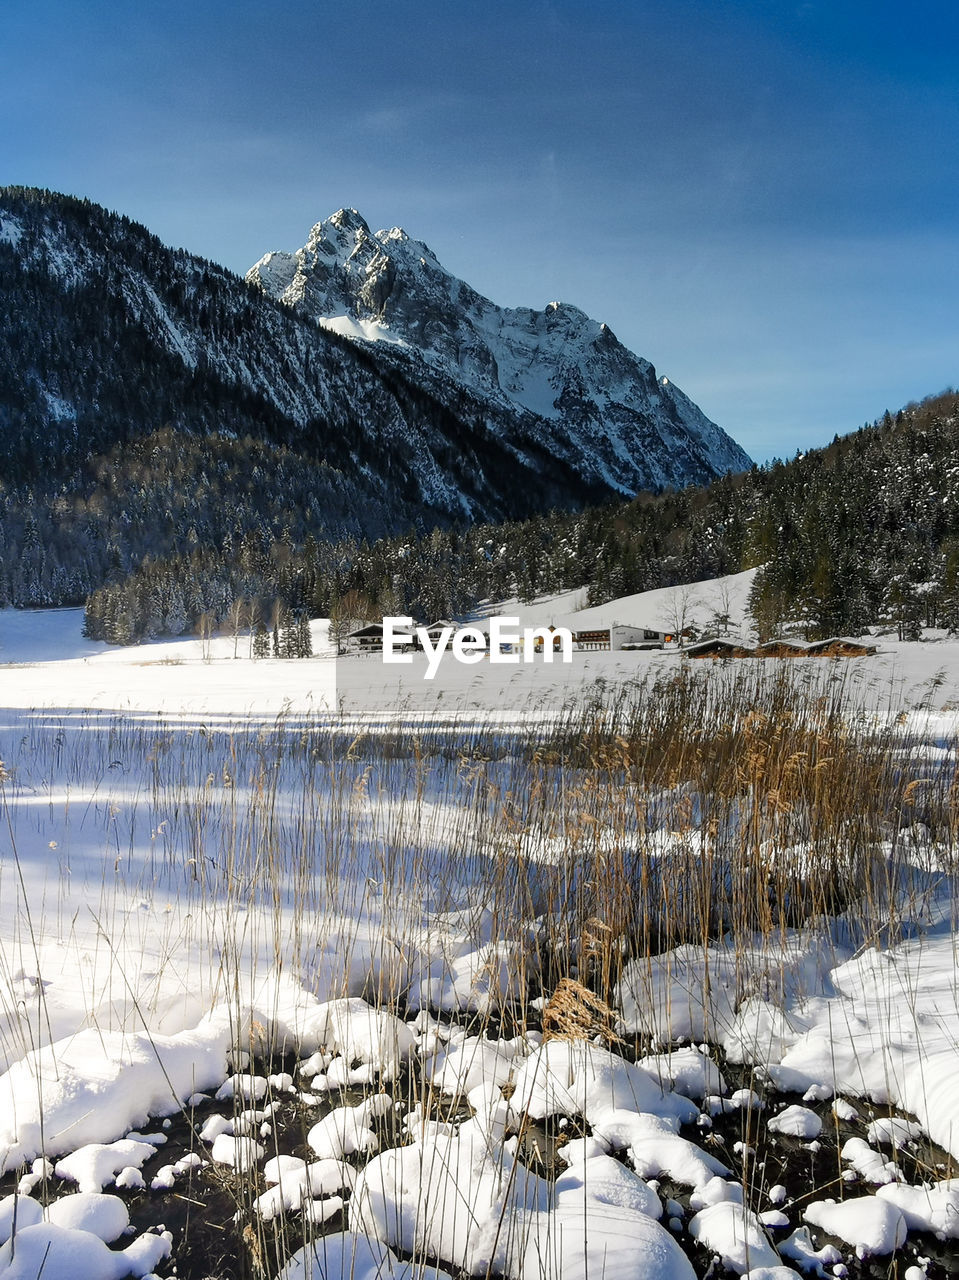 View to wetterstein in the bavarian alps from frozen lautersee near mittenwald